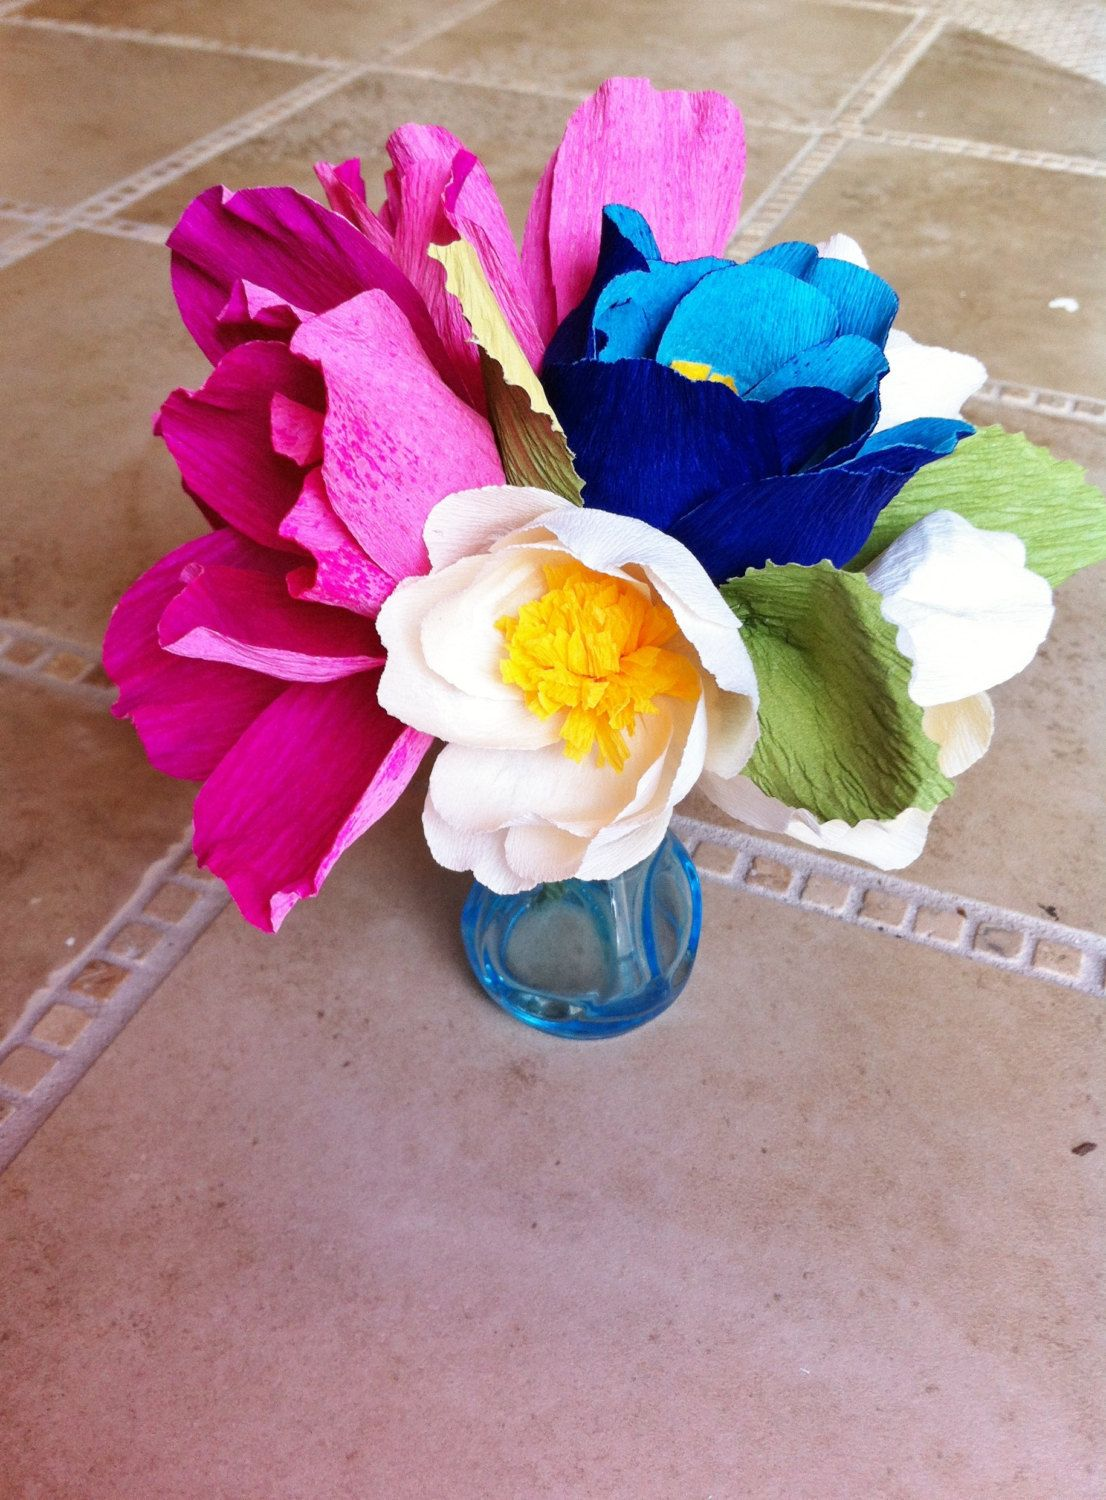 bright wedding flowers made from eco paper & pinterest flowers made from paper plates | Inspiration from blog ...